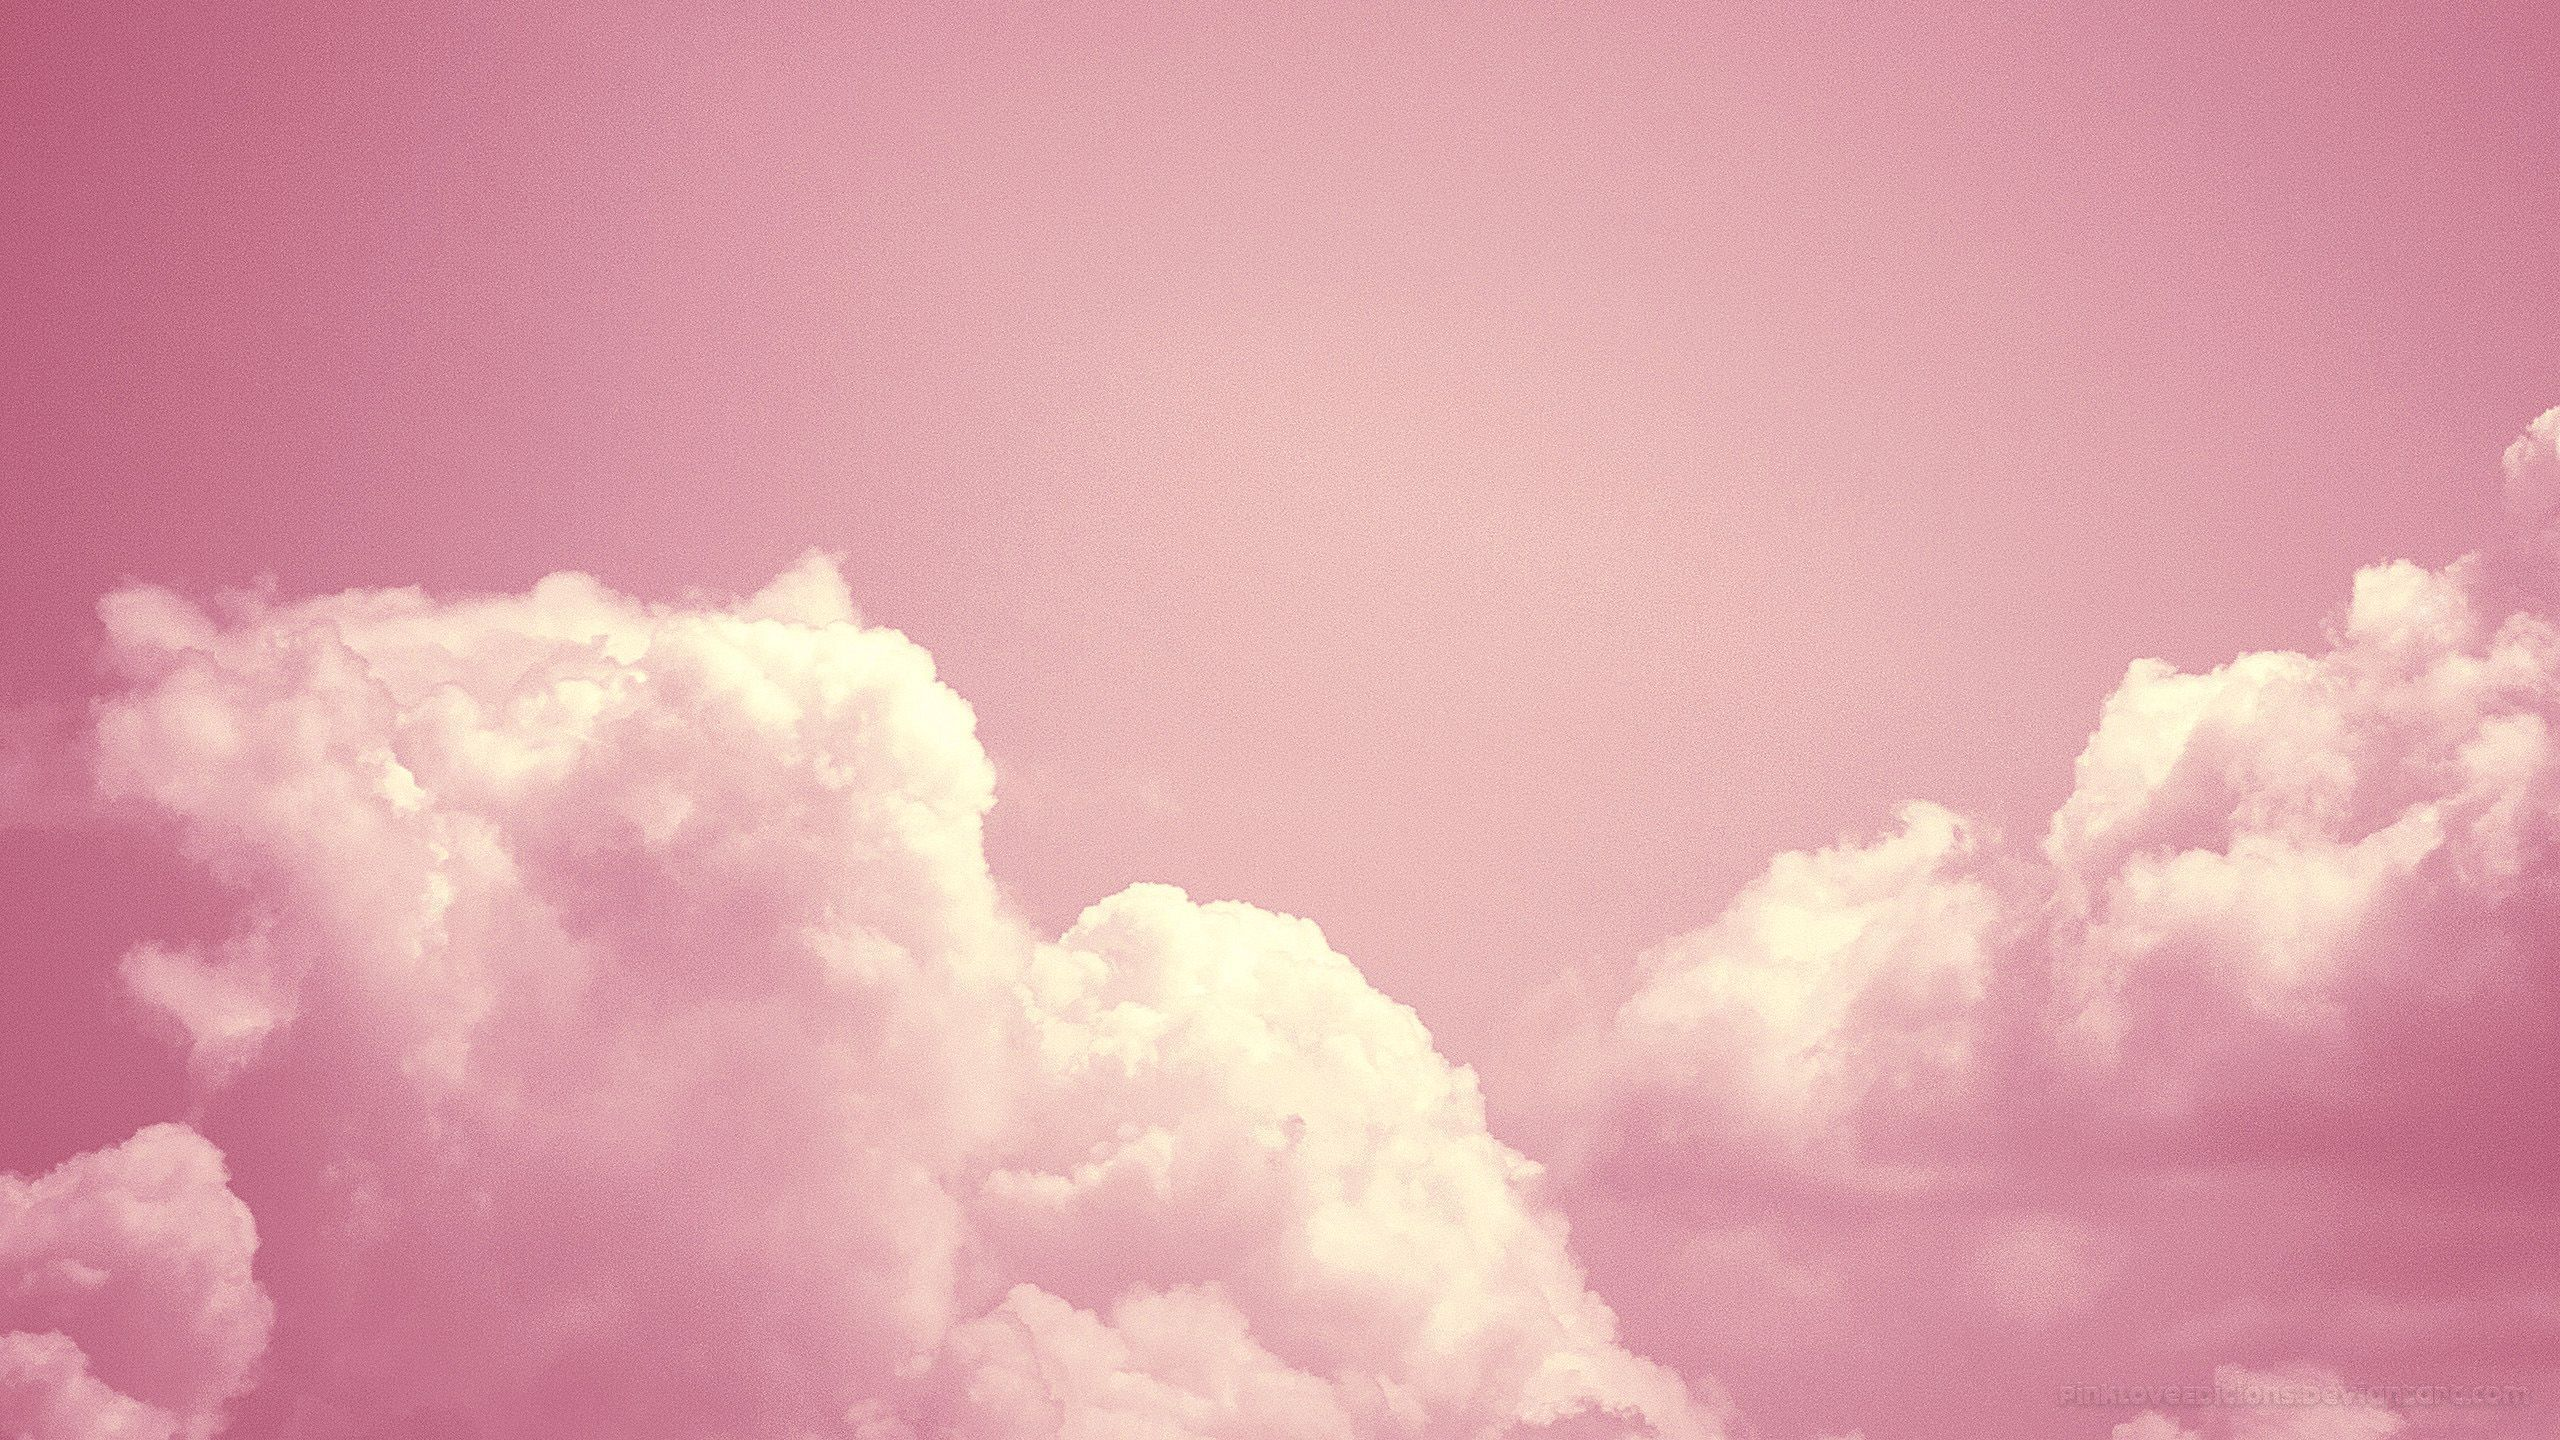 Wallpaper Tumblr Pink 4k Pink Clouds Wallpaper Tumblr Backgrounds Cloud Wallpaper